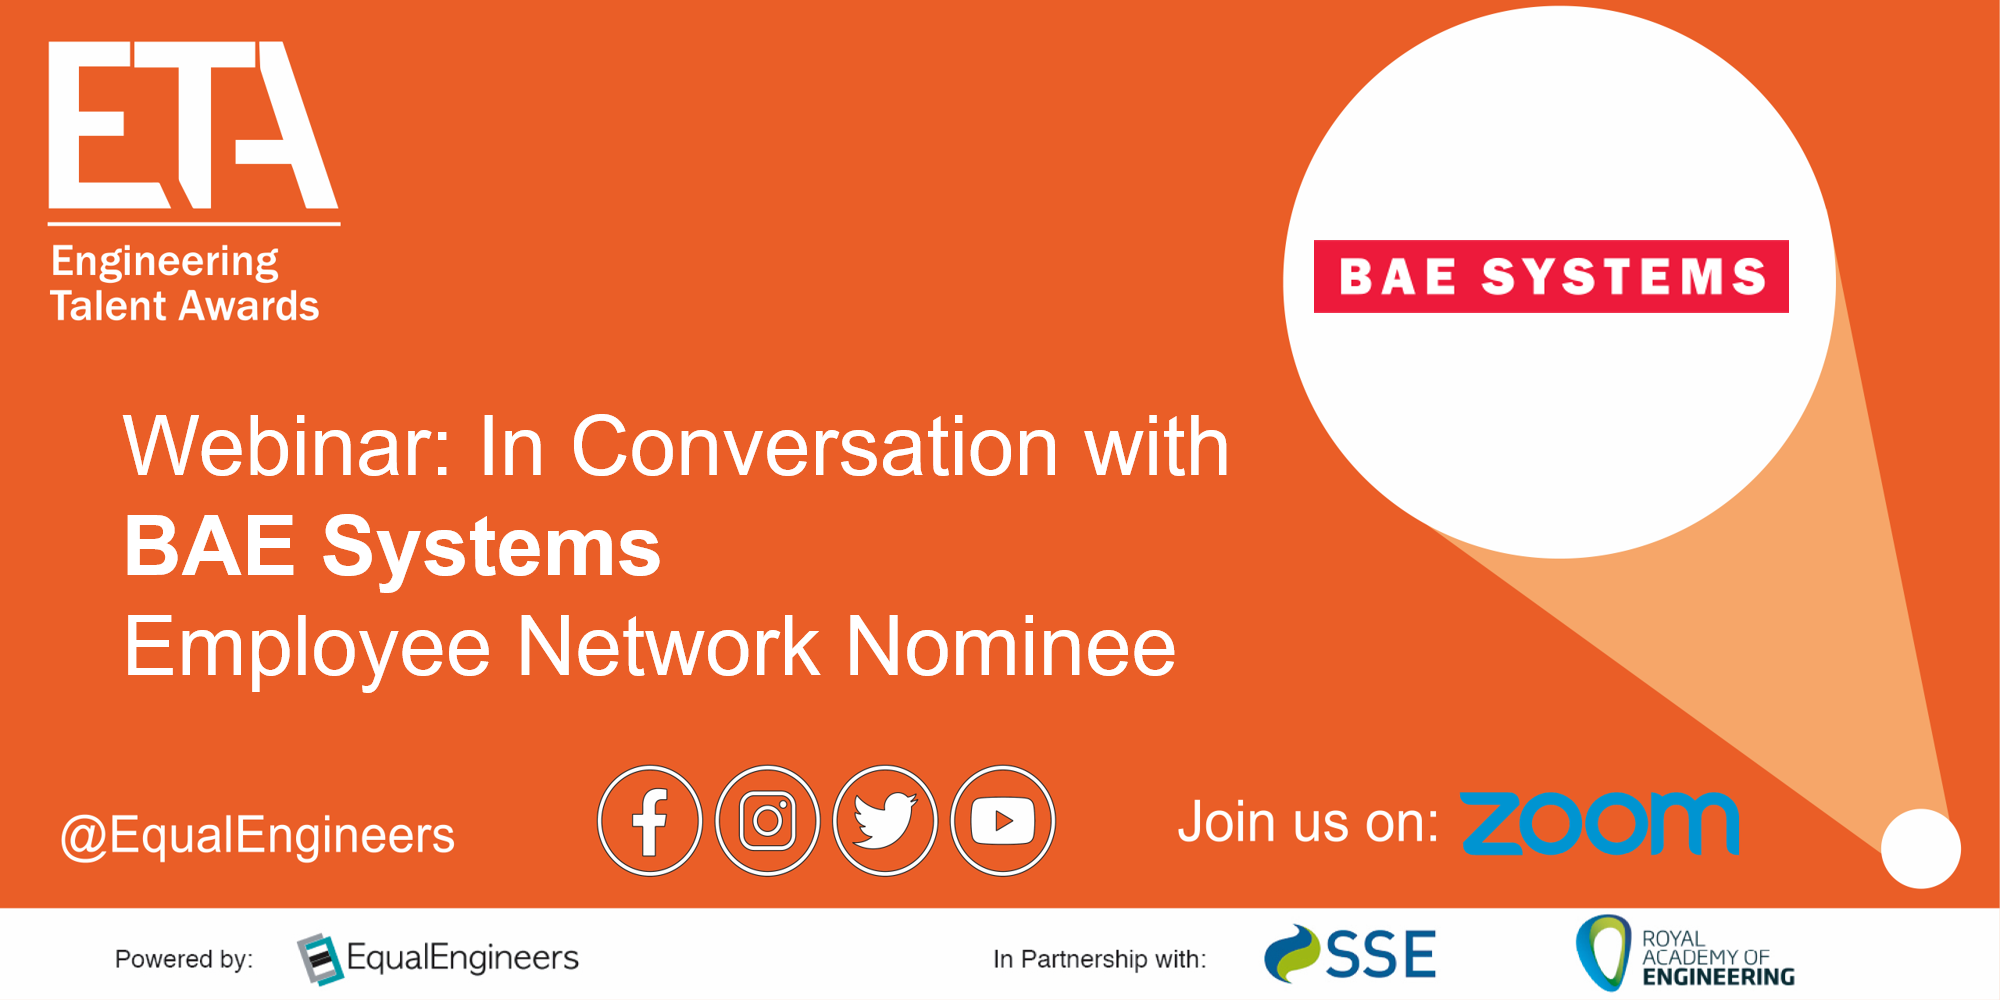 employee-network-nominee-bae-systems